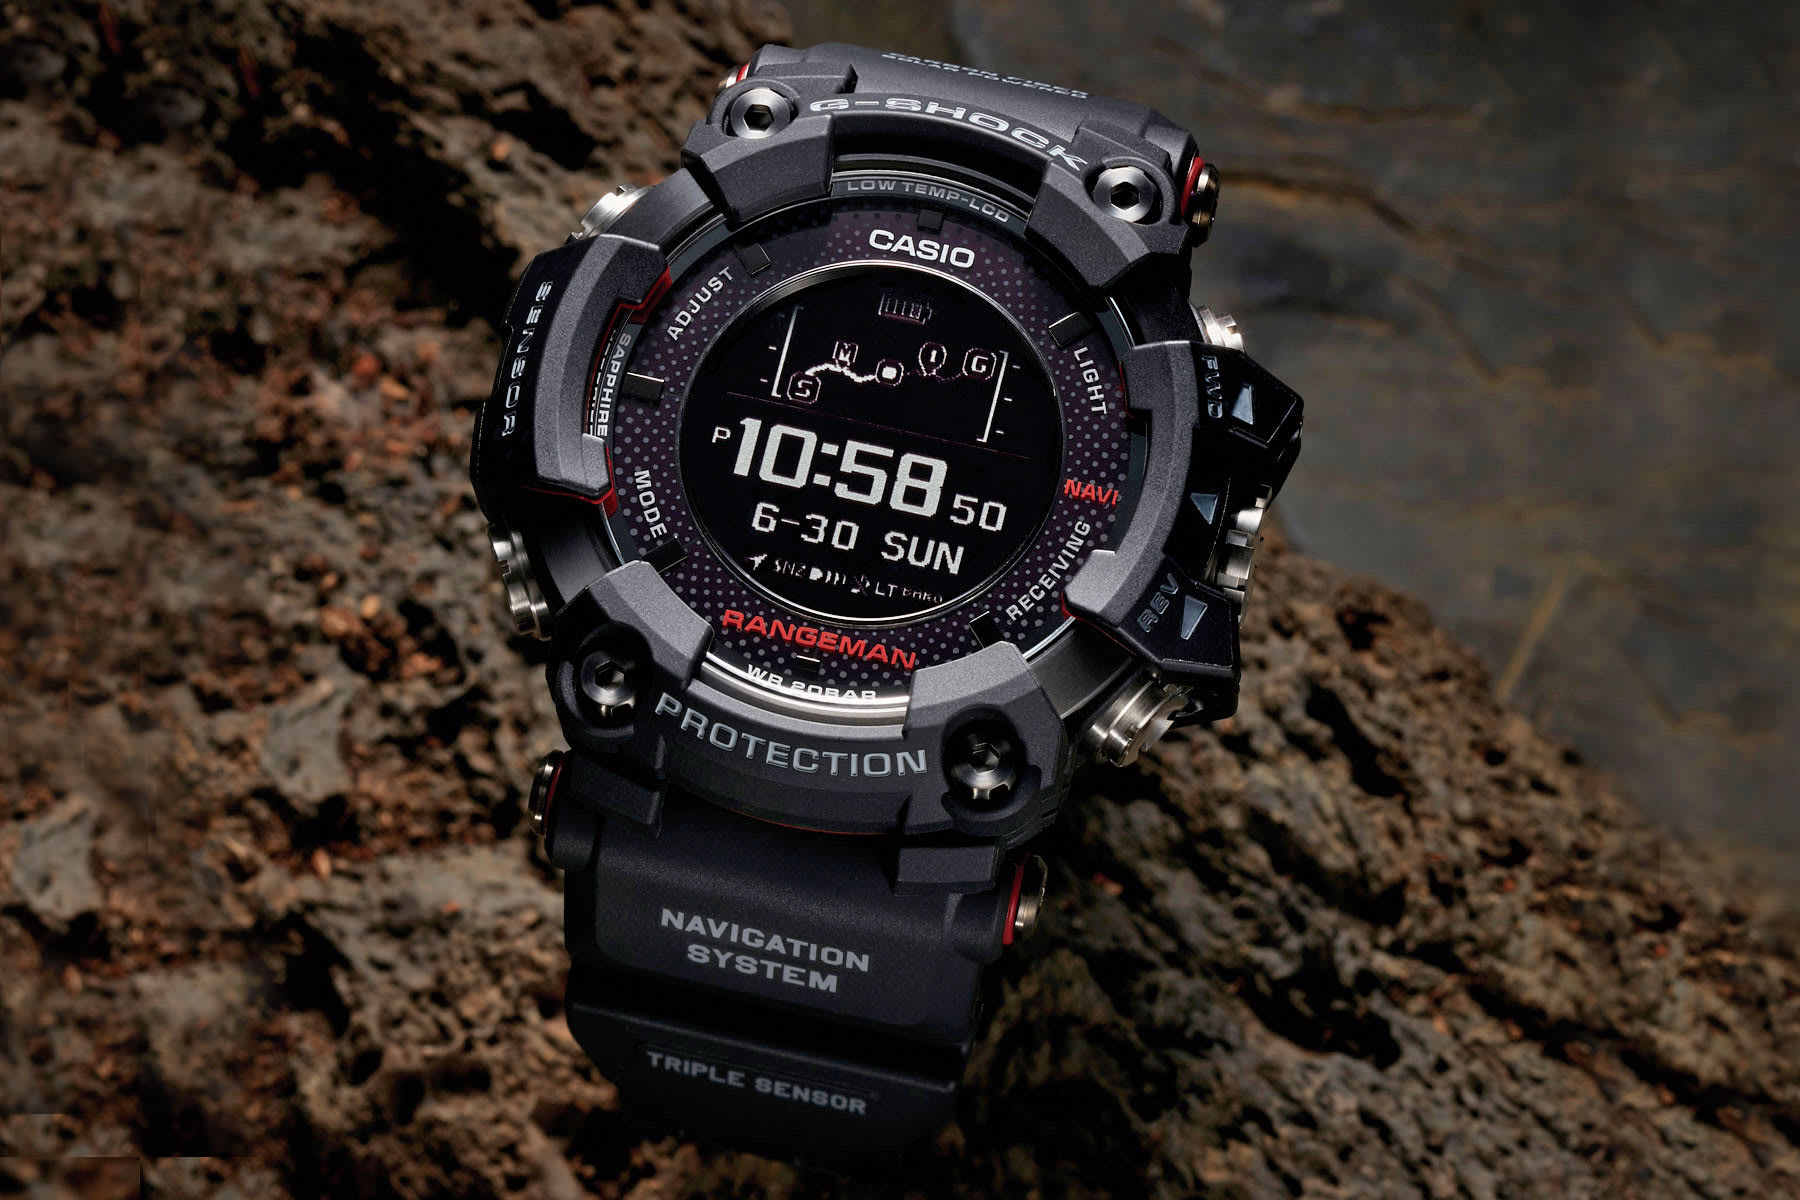 Casio S Solar Powered Gps Watch Is Ideal For Survivalists